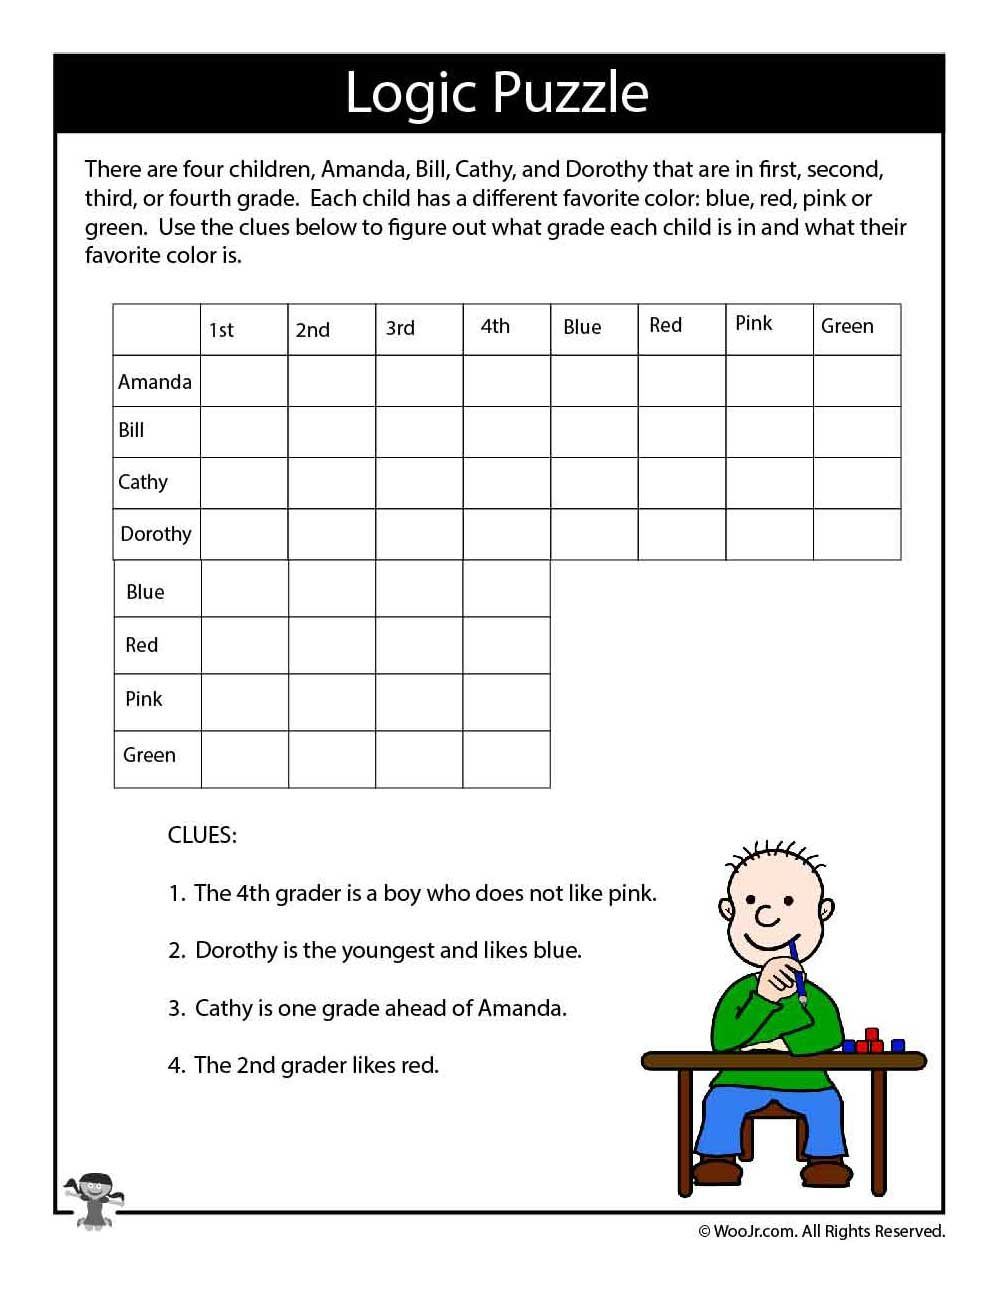 hight resolution of Hard Logic Puzzle for Kids   Woo! Jr. Kids Activities   Math logic puzzles